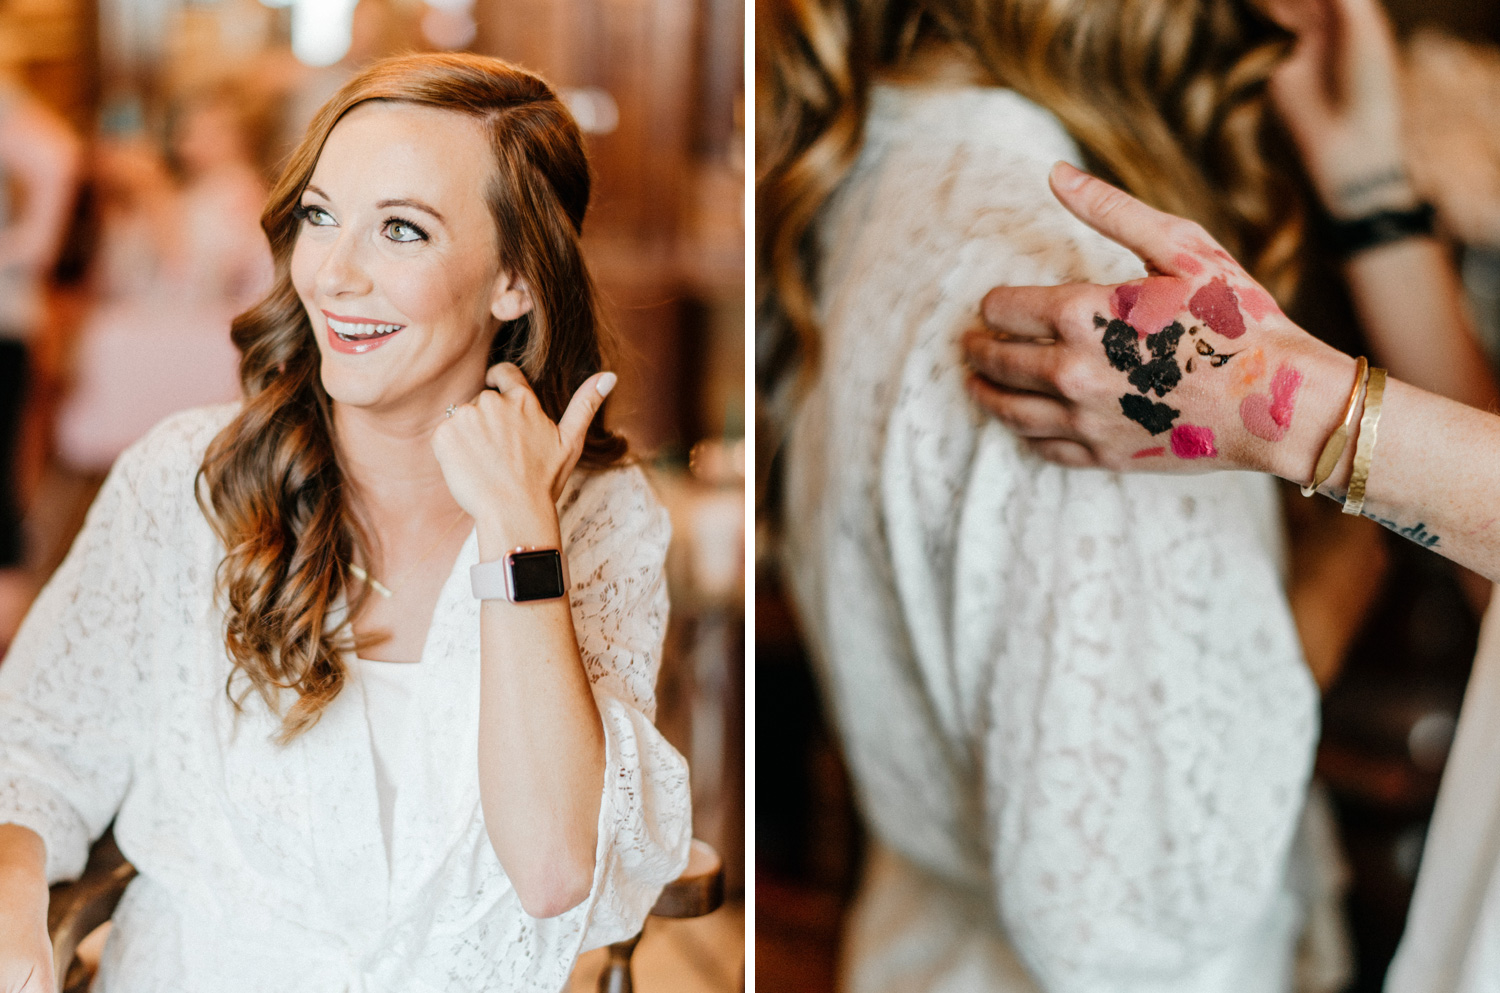 Bride getting ready at Southwind Hills by geneoh photography